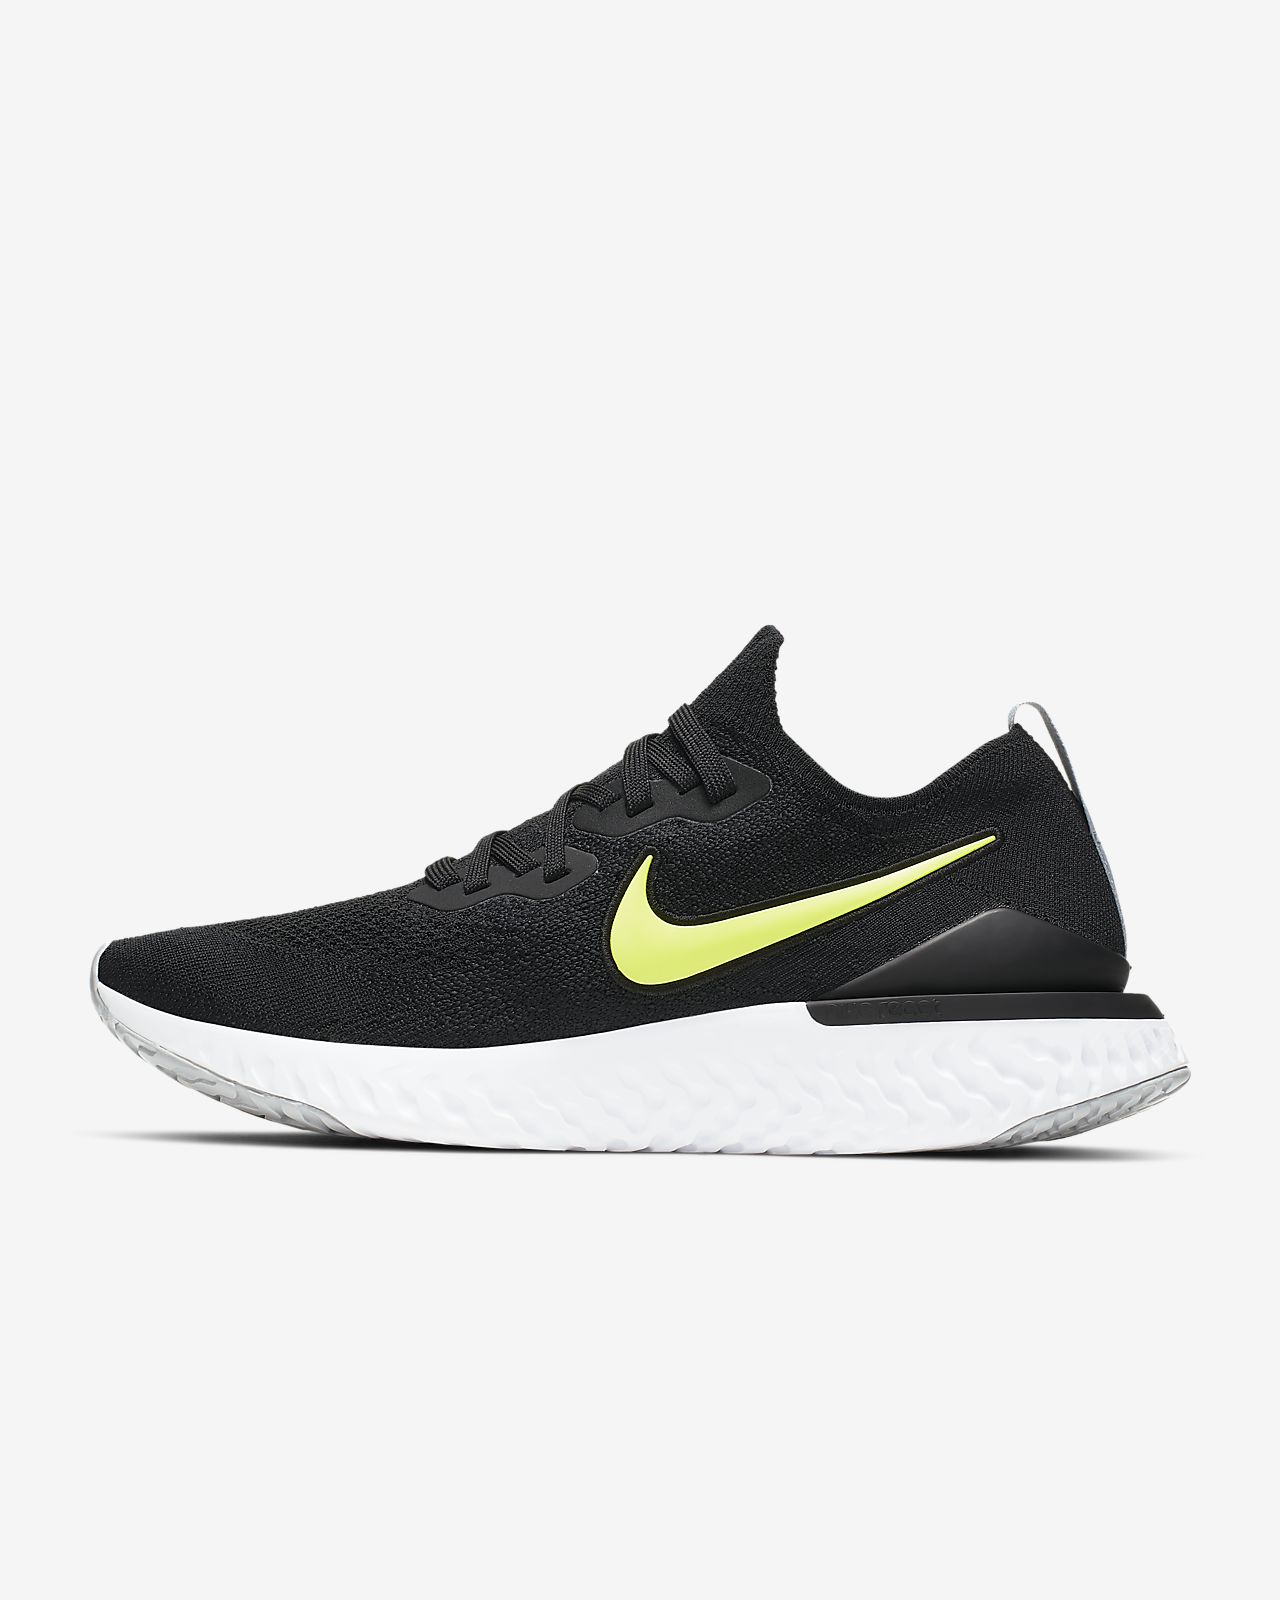 new product f625e 60446 Men s Running Shoe. Nike Epic React Flyknit 2